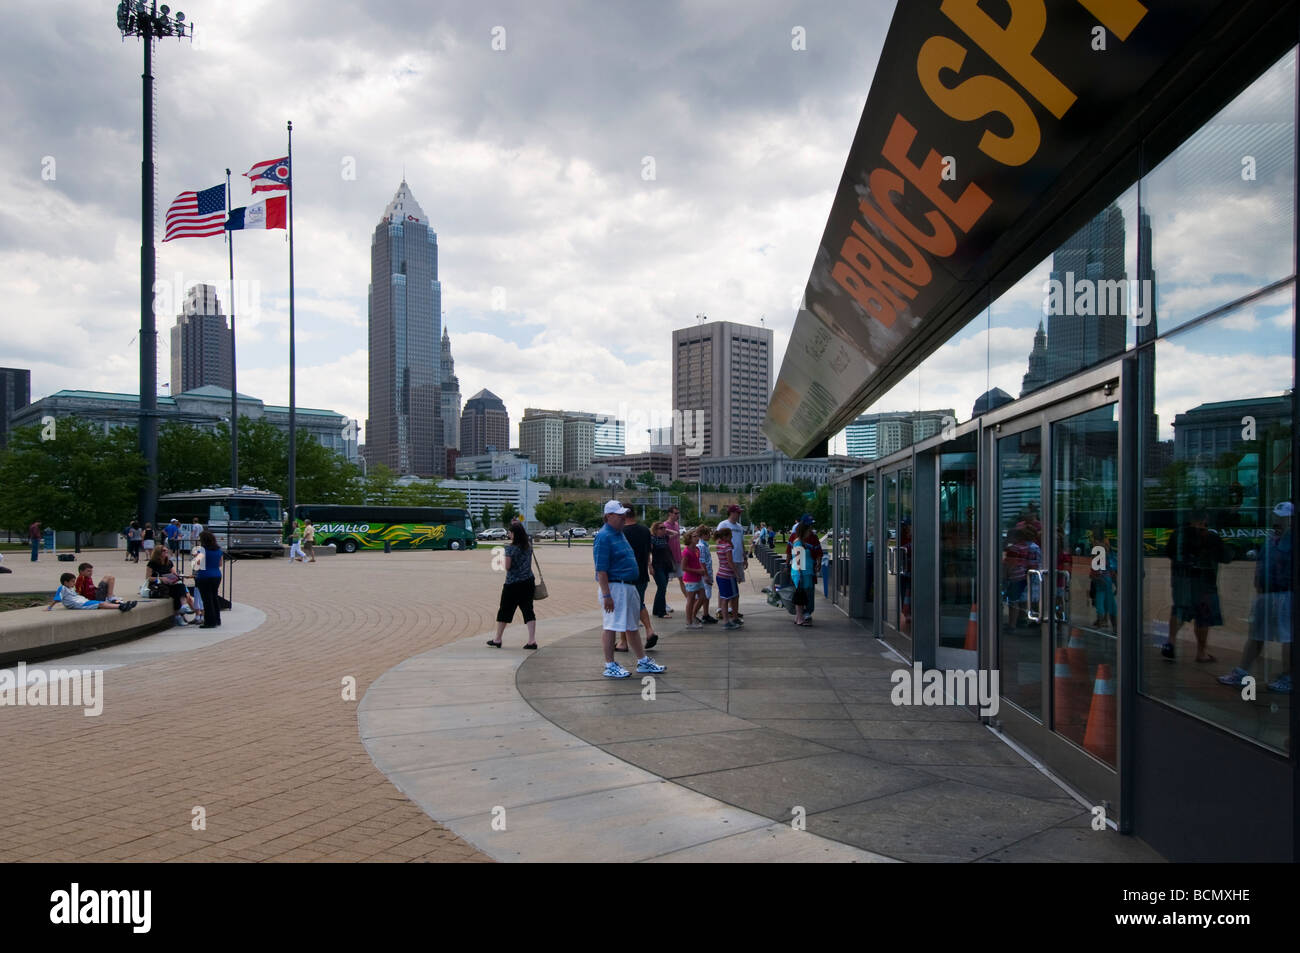 Visitors in front of Cleveland's Rock 'n roll, Hall of Fame - Stock Image